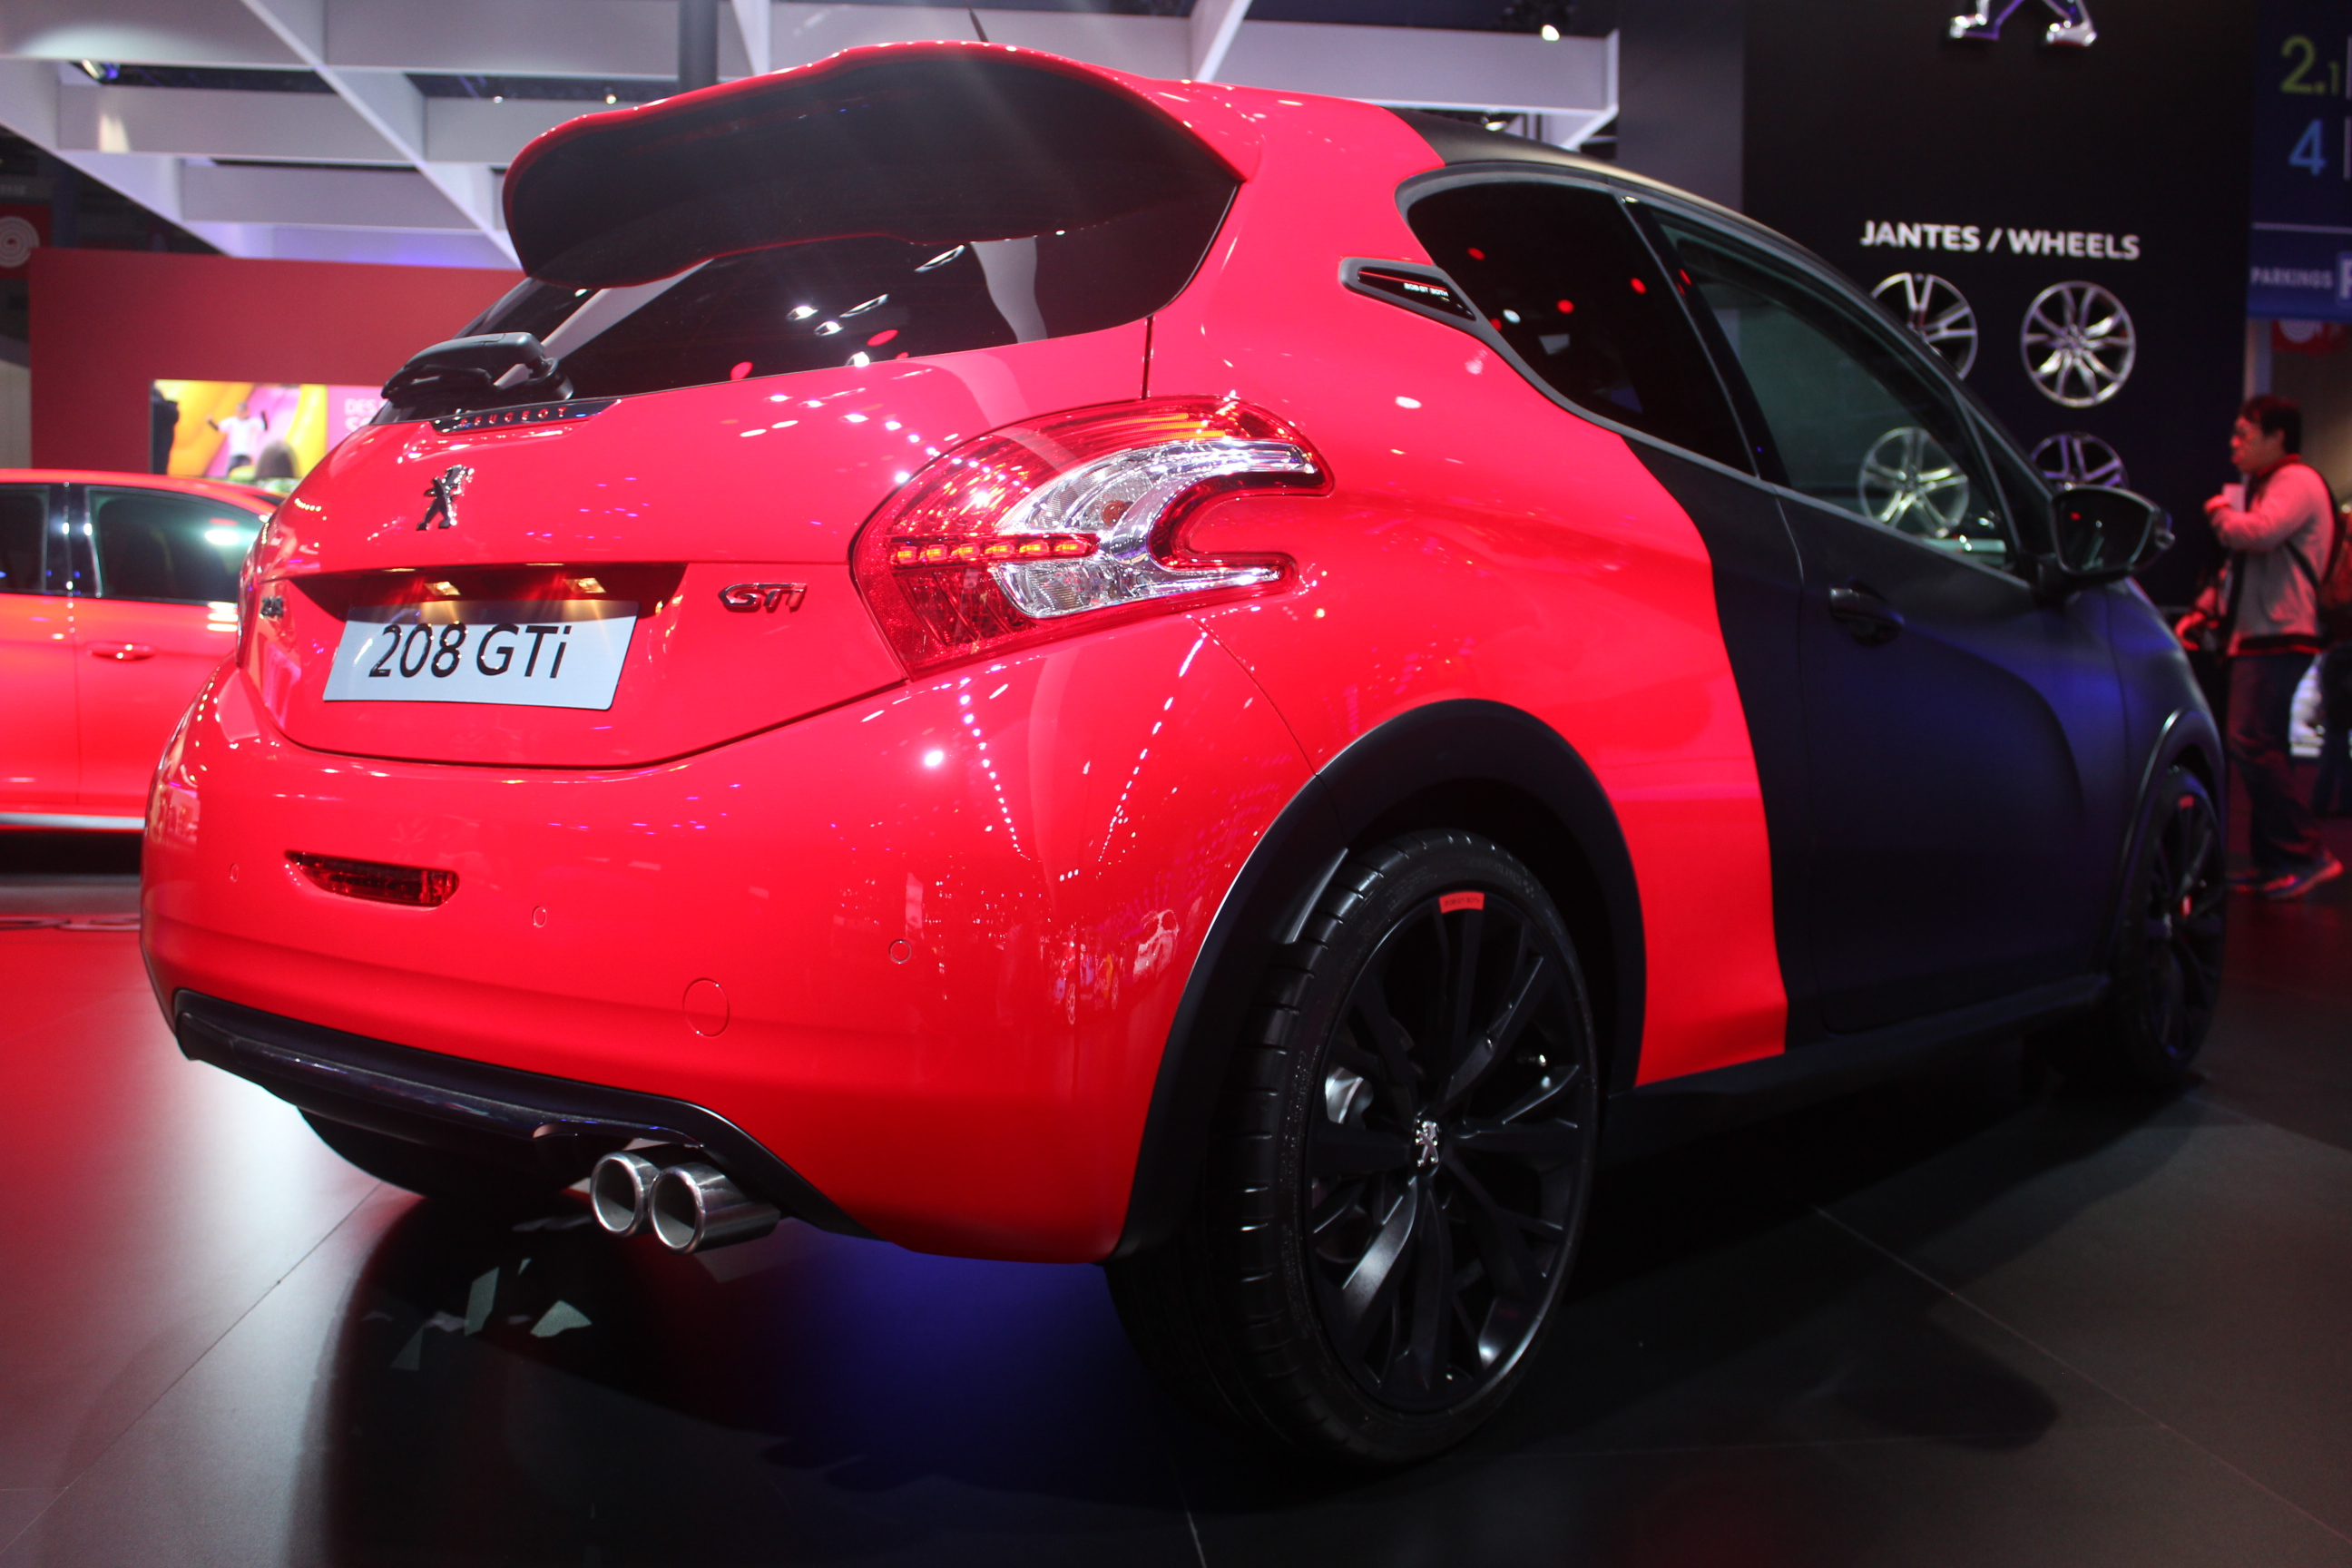 Peugeot 208 gti 30th en rouge et noir vid o en direct du salon de paris 2014 - Salon rouge et noir ...